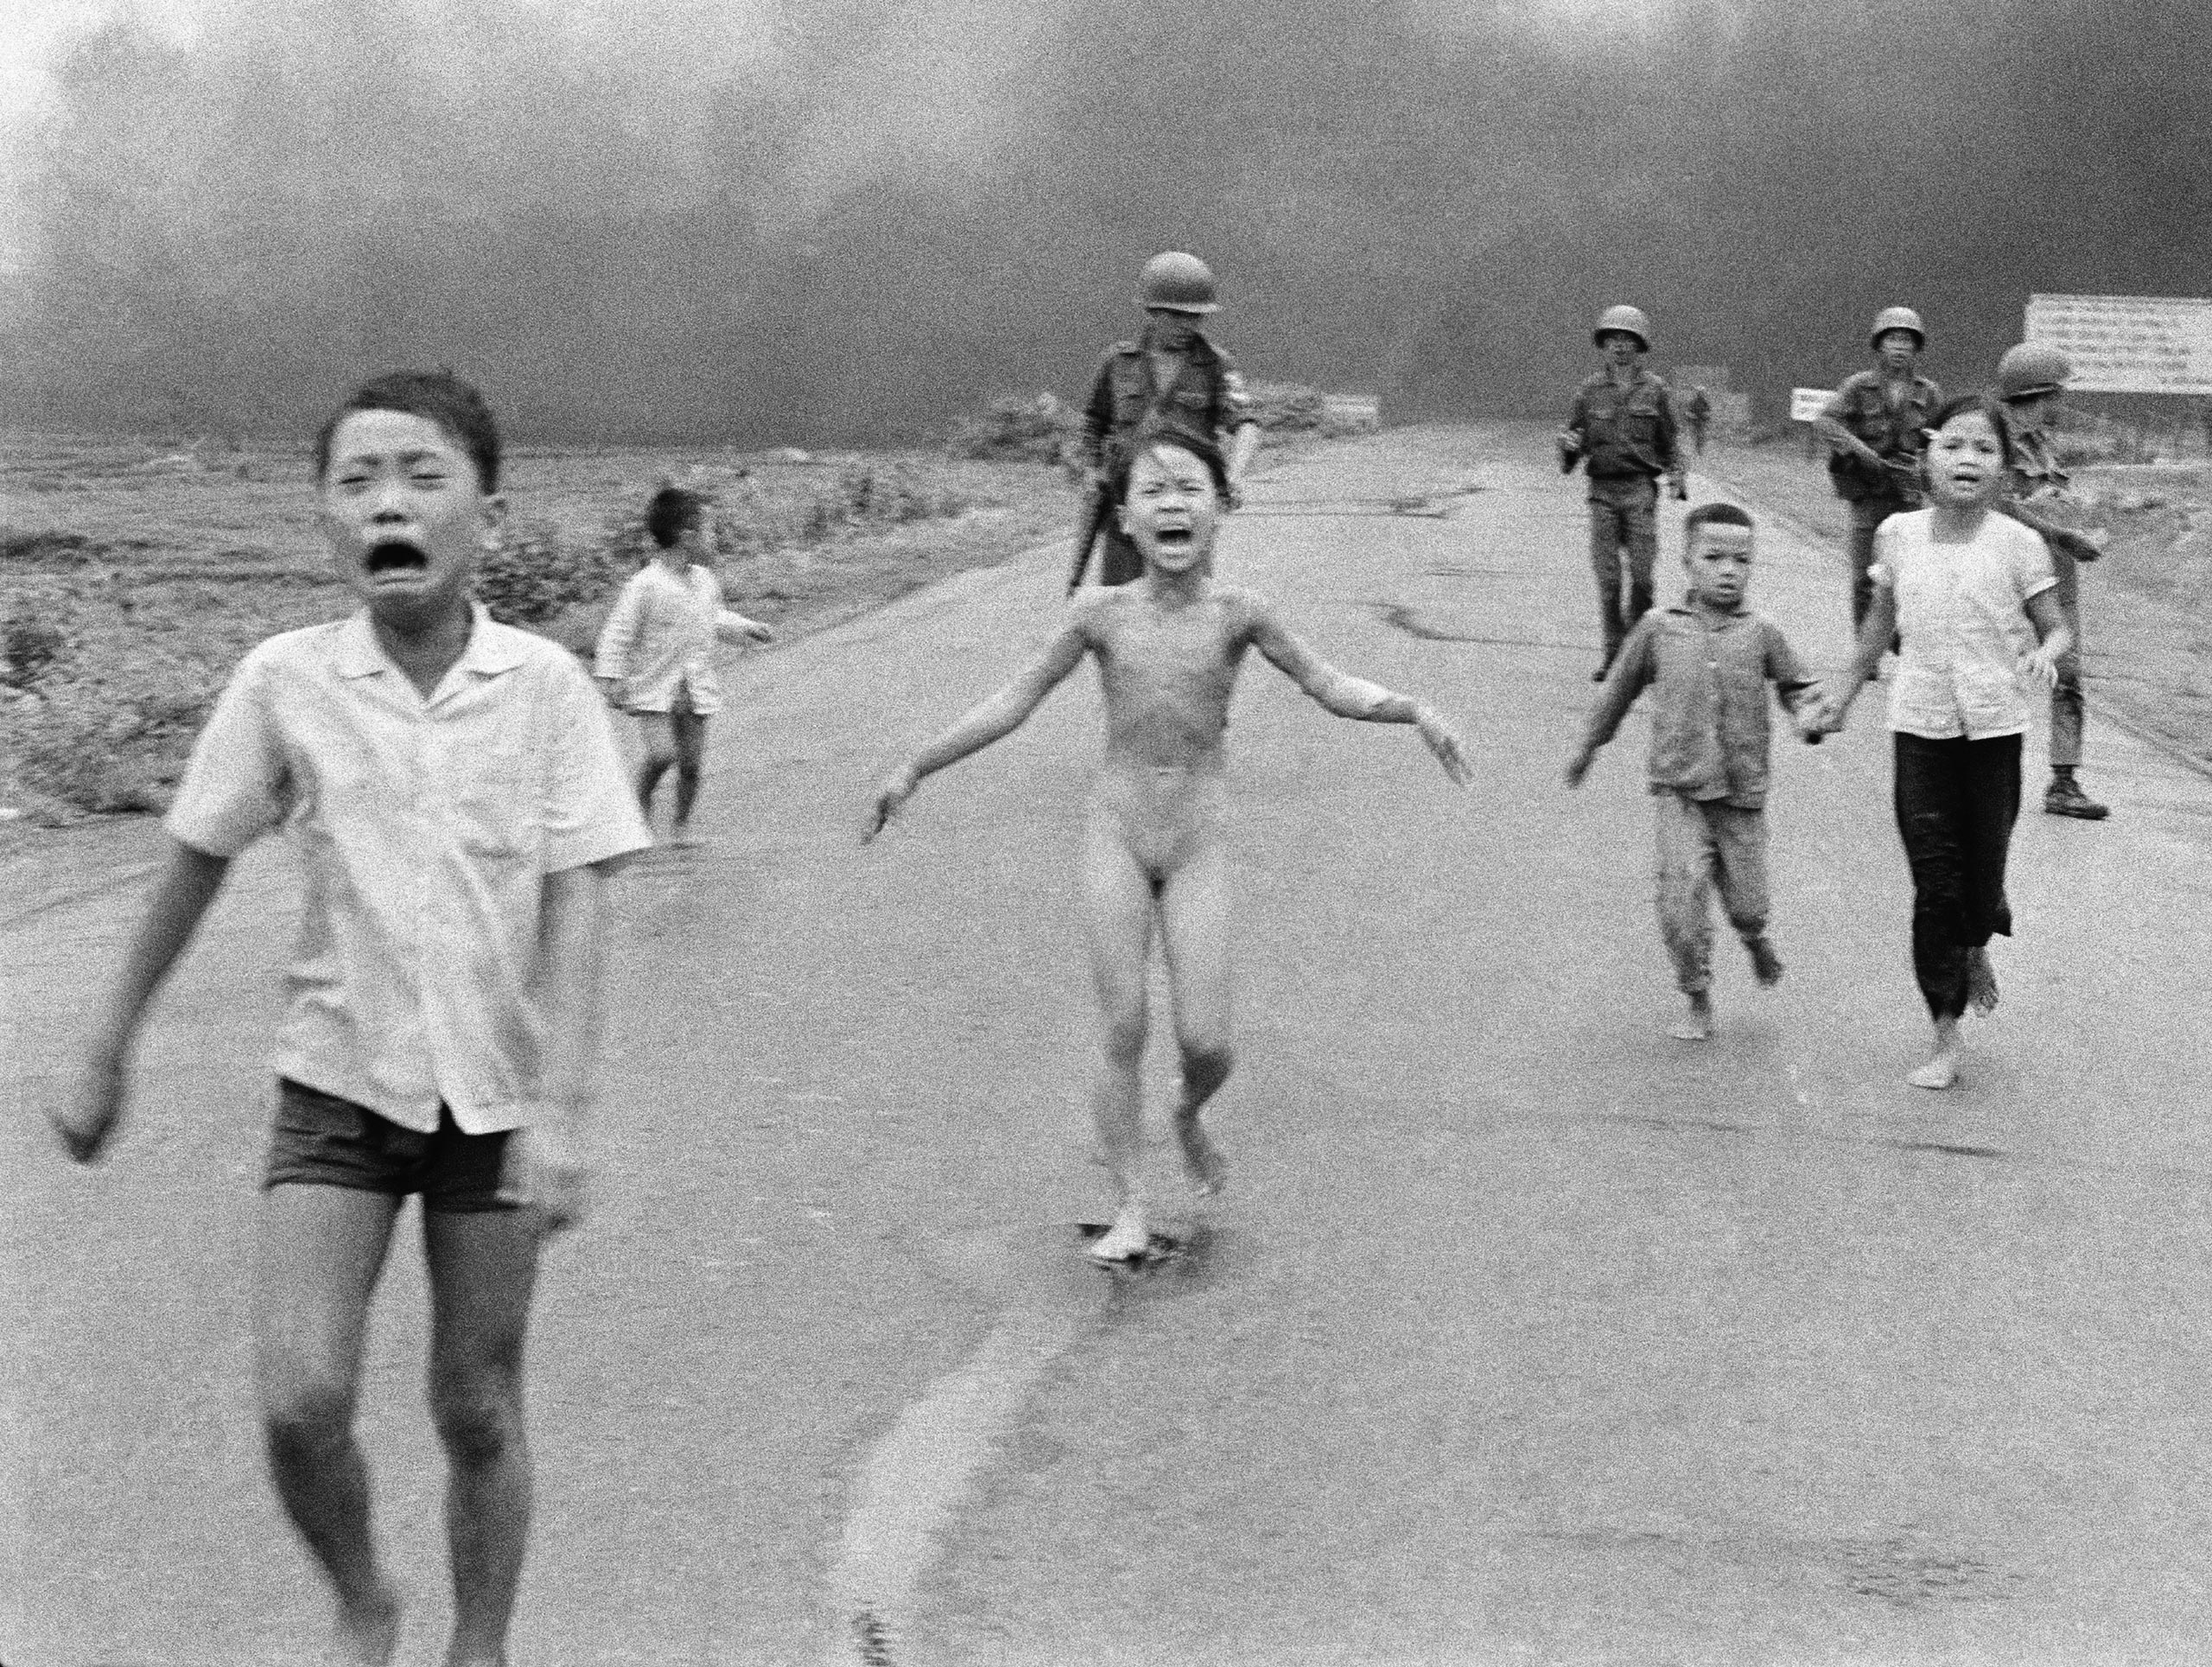 South Vietnamese forces follow after terrified children, including 9-year-old Kim Phuc, center, as they run down Route 1 near Trang Bang after an aerial napalm attack on suspected Viet Cong hiding places on June 8, 1972.